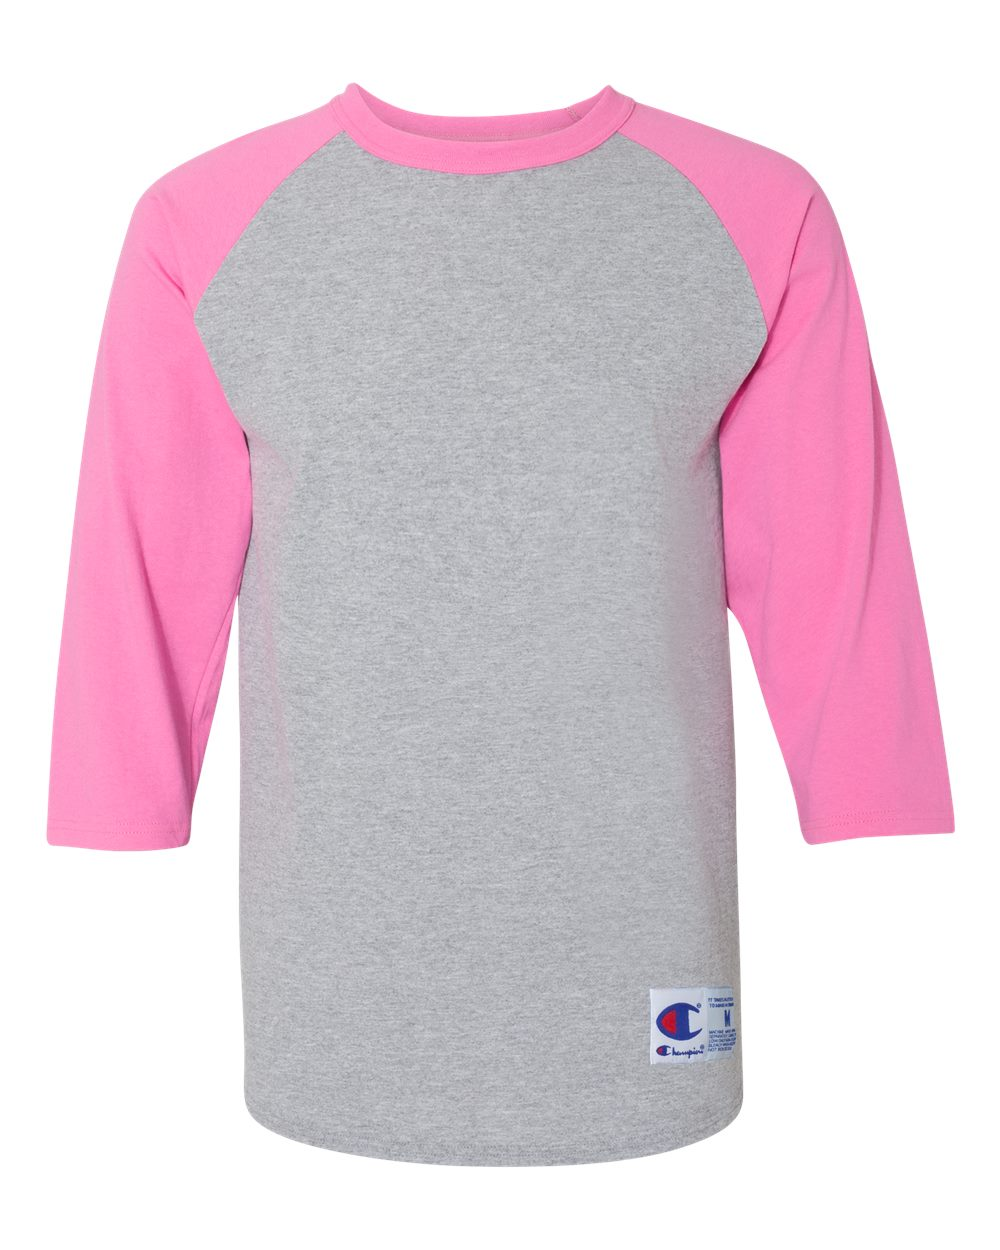 click to view Oxford Grey/ Charity Pink